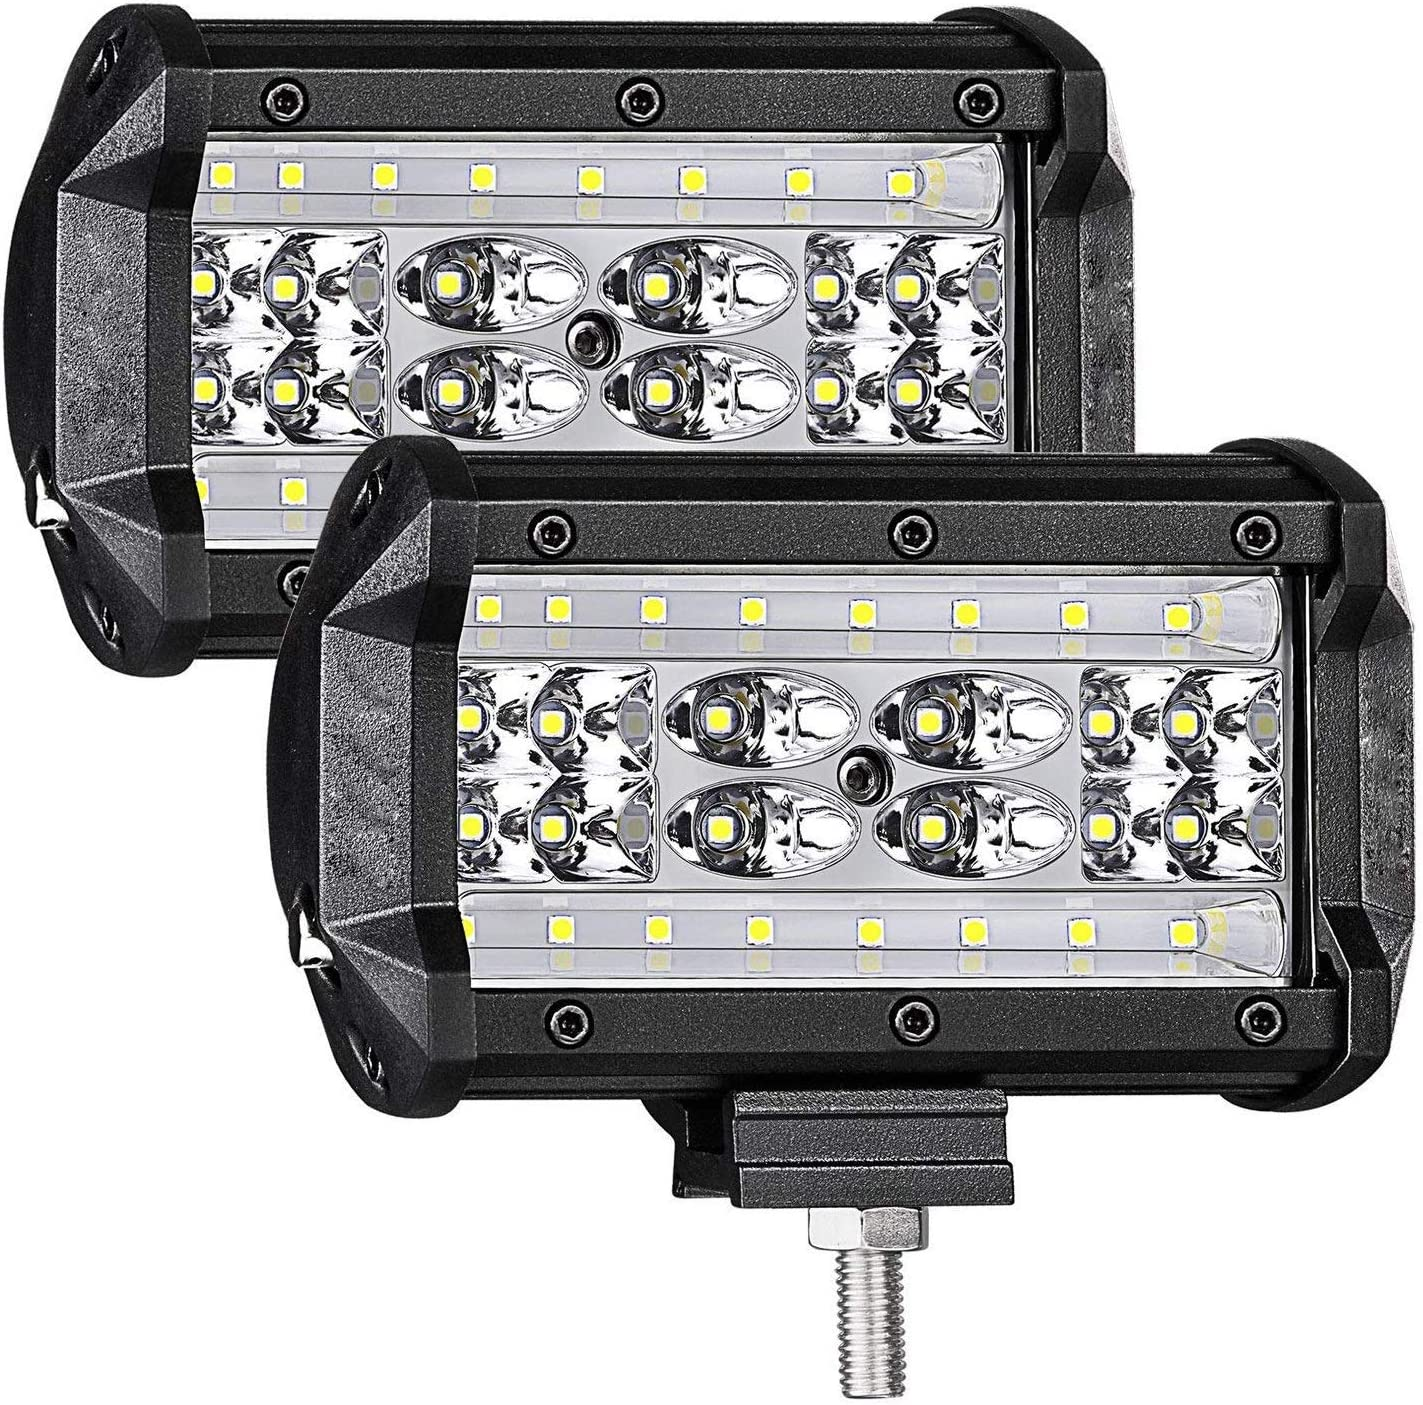 Amazon coupon code for 84W LED Light Bar